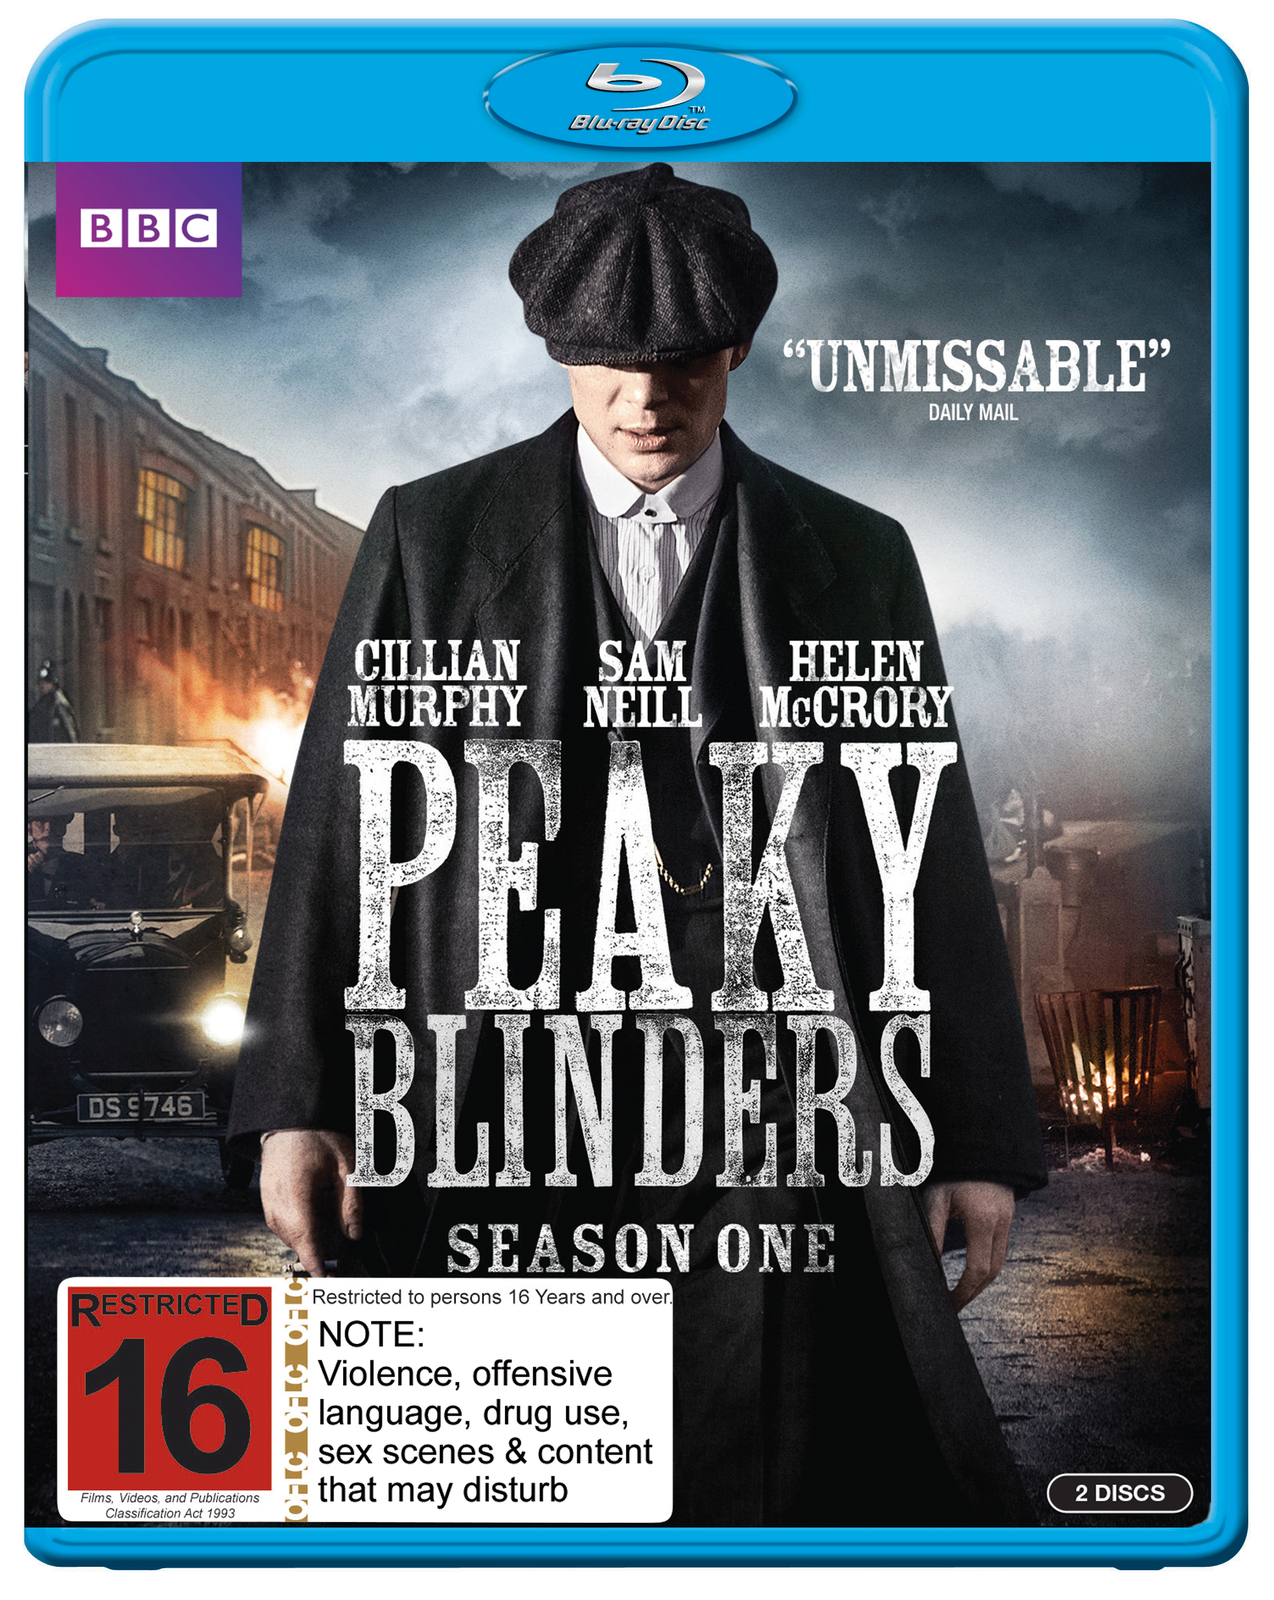 Peaky Blinders - The Complete First Season on Blu-ray image